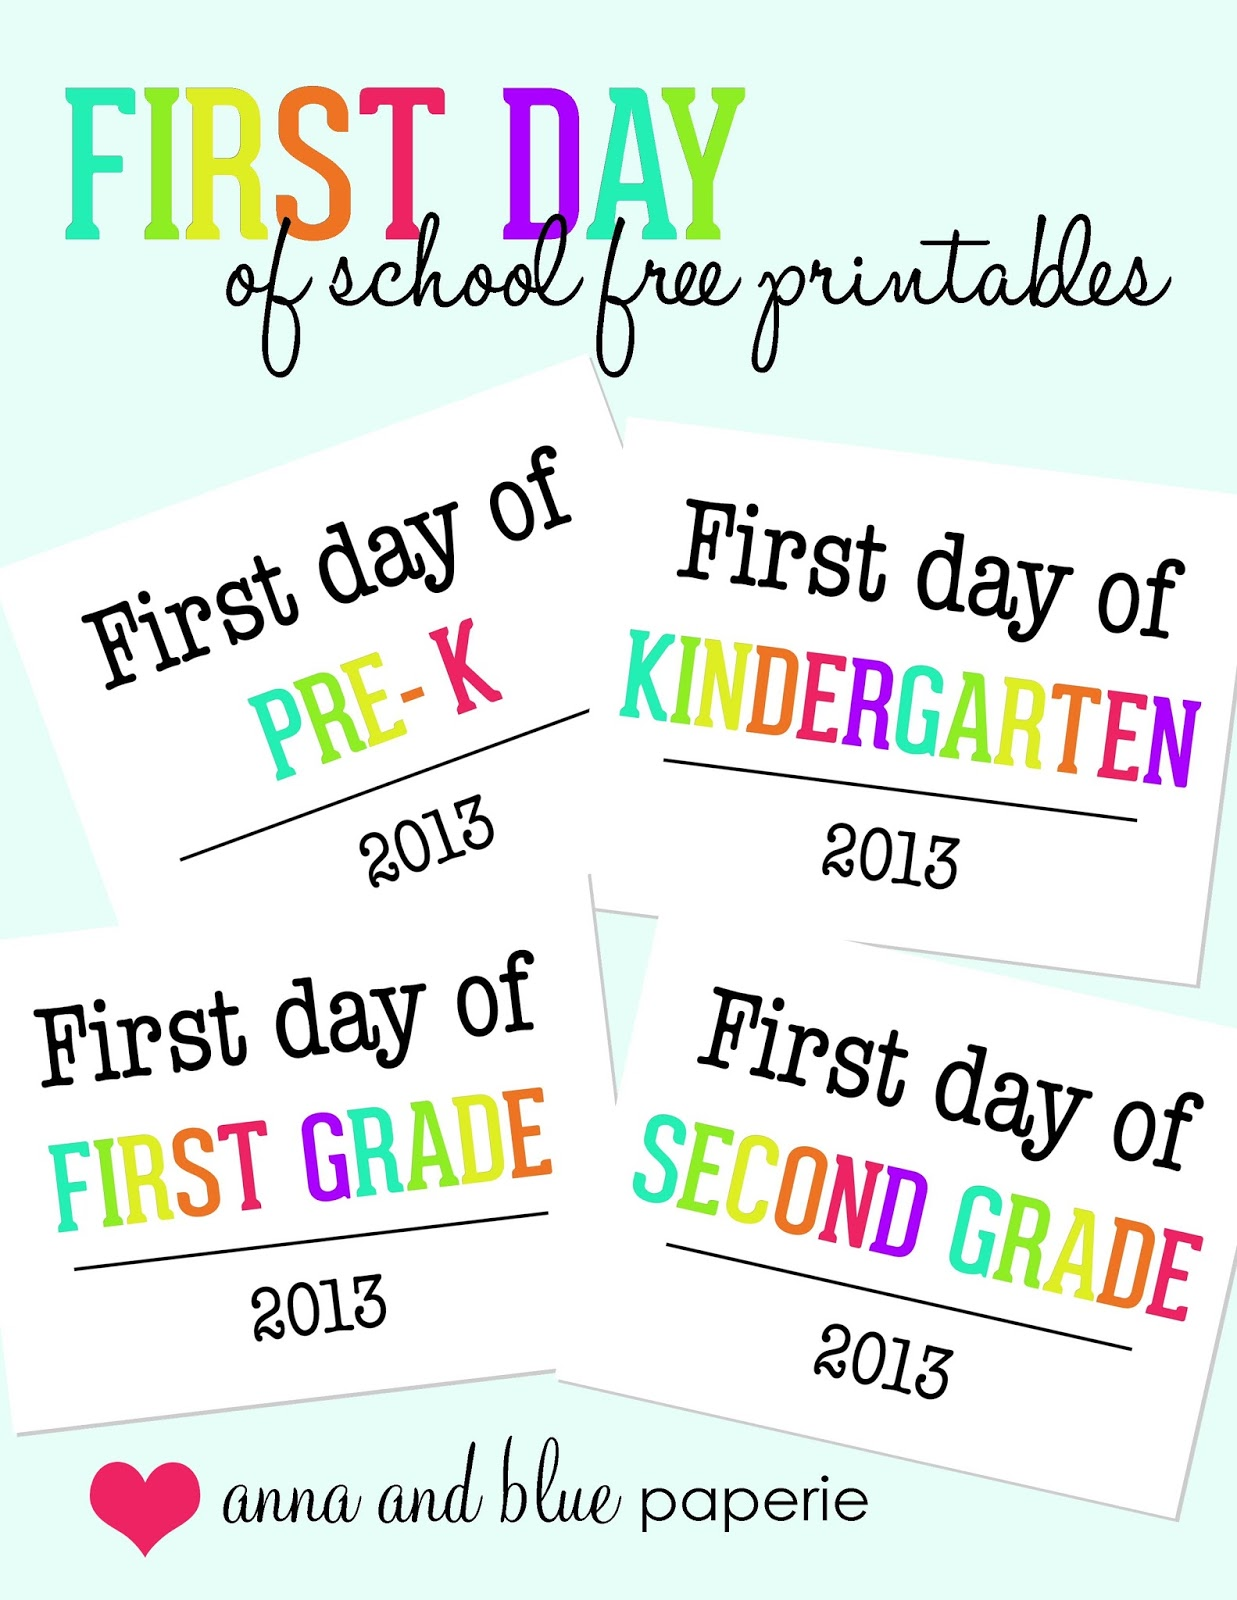 Free Printable Worksheets For First Day Of School : Anna and blue paperie first day of school photo op free